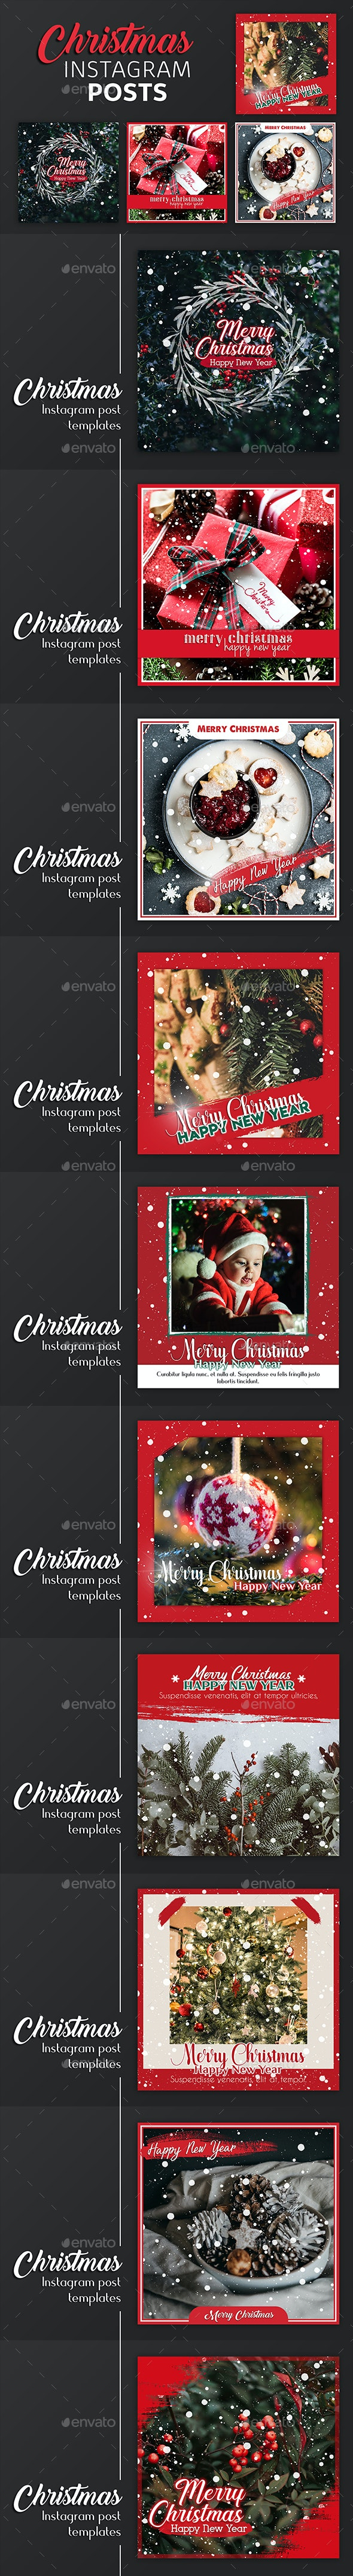 Christmas Instagram Post Templates - Social Media Web Elements